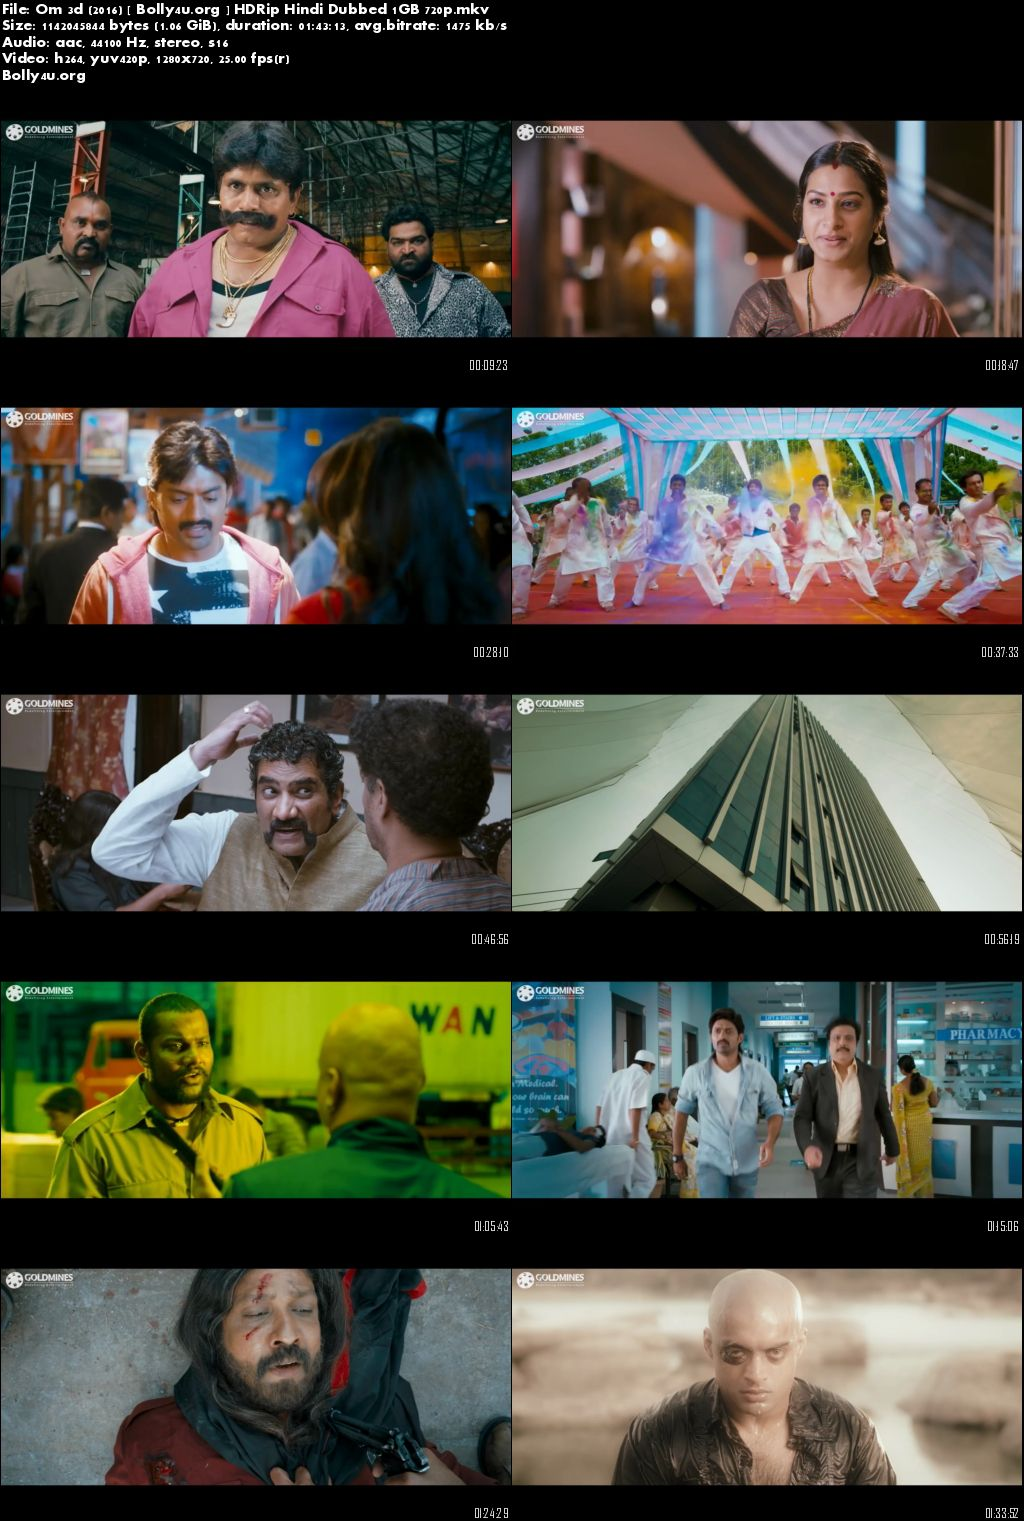 Om 3D (2016) HDRip Hindi Dubbed 1GB 720p Download